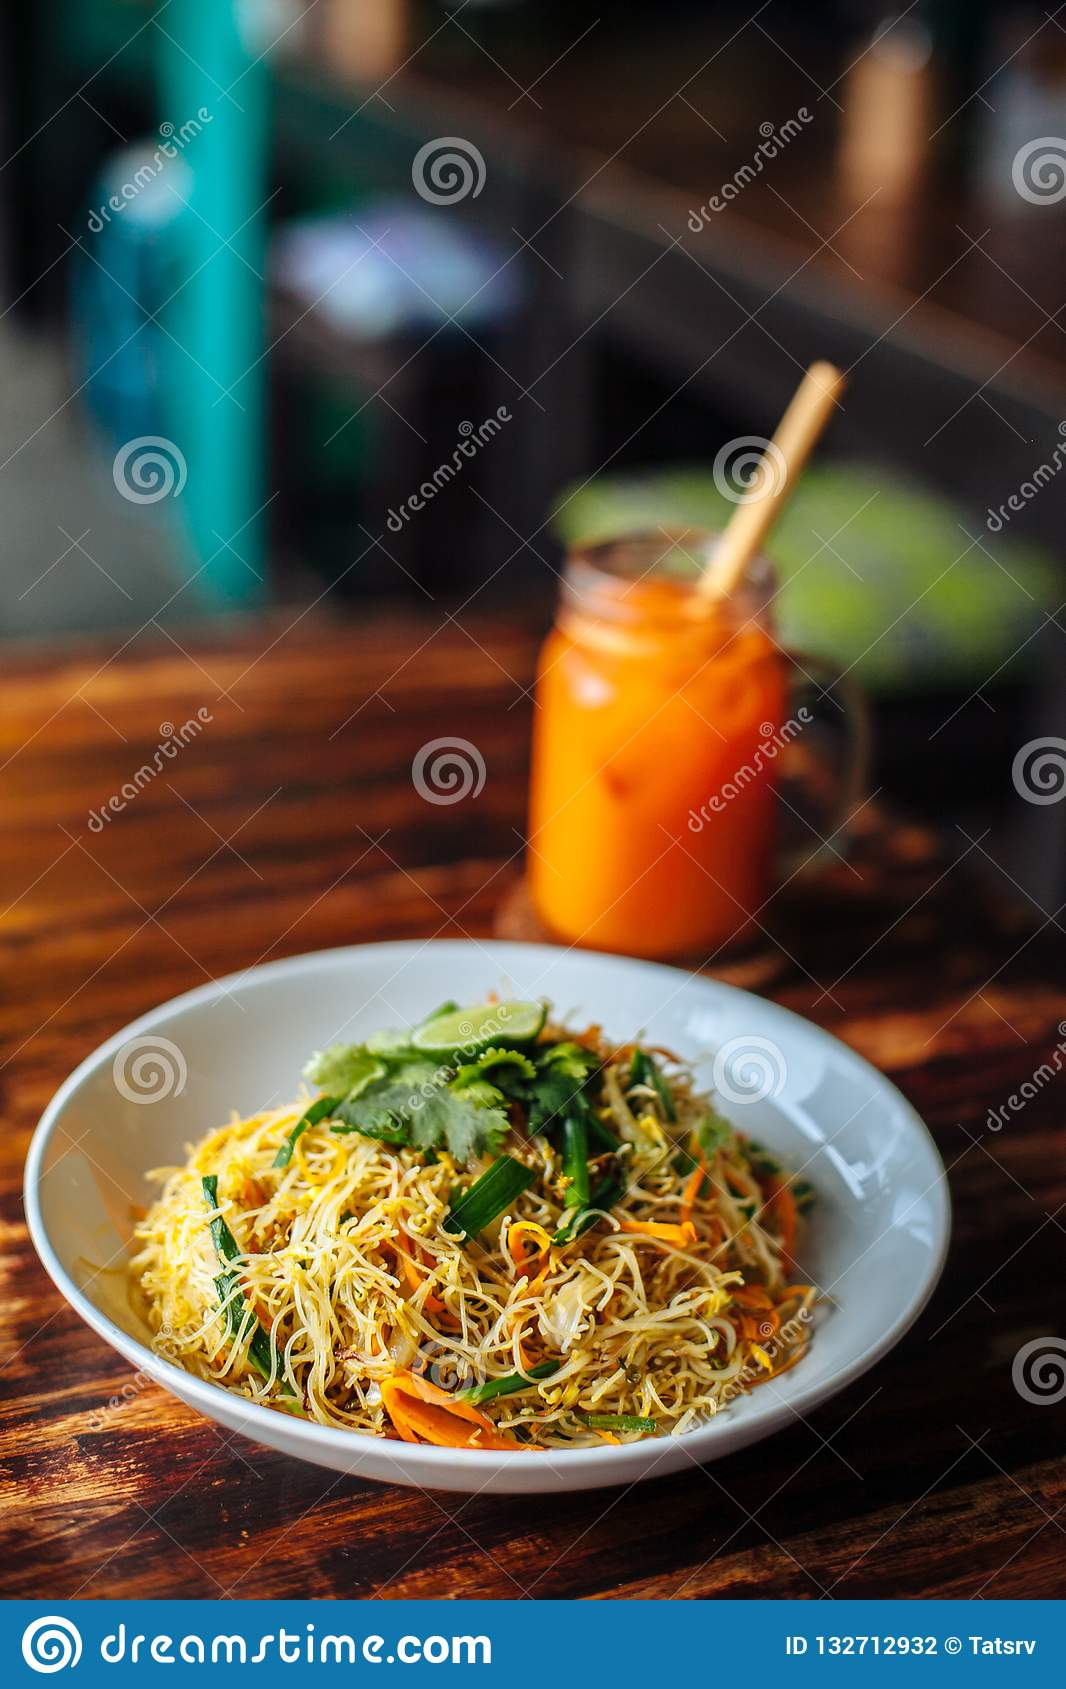 Healthy Vegetarian vegan menu Delicious Singapore style Stir fried rice noodles with carrot orange smoothies on wooden table in